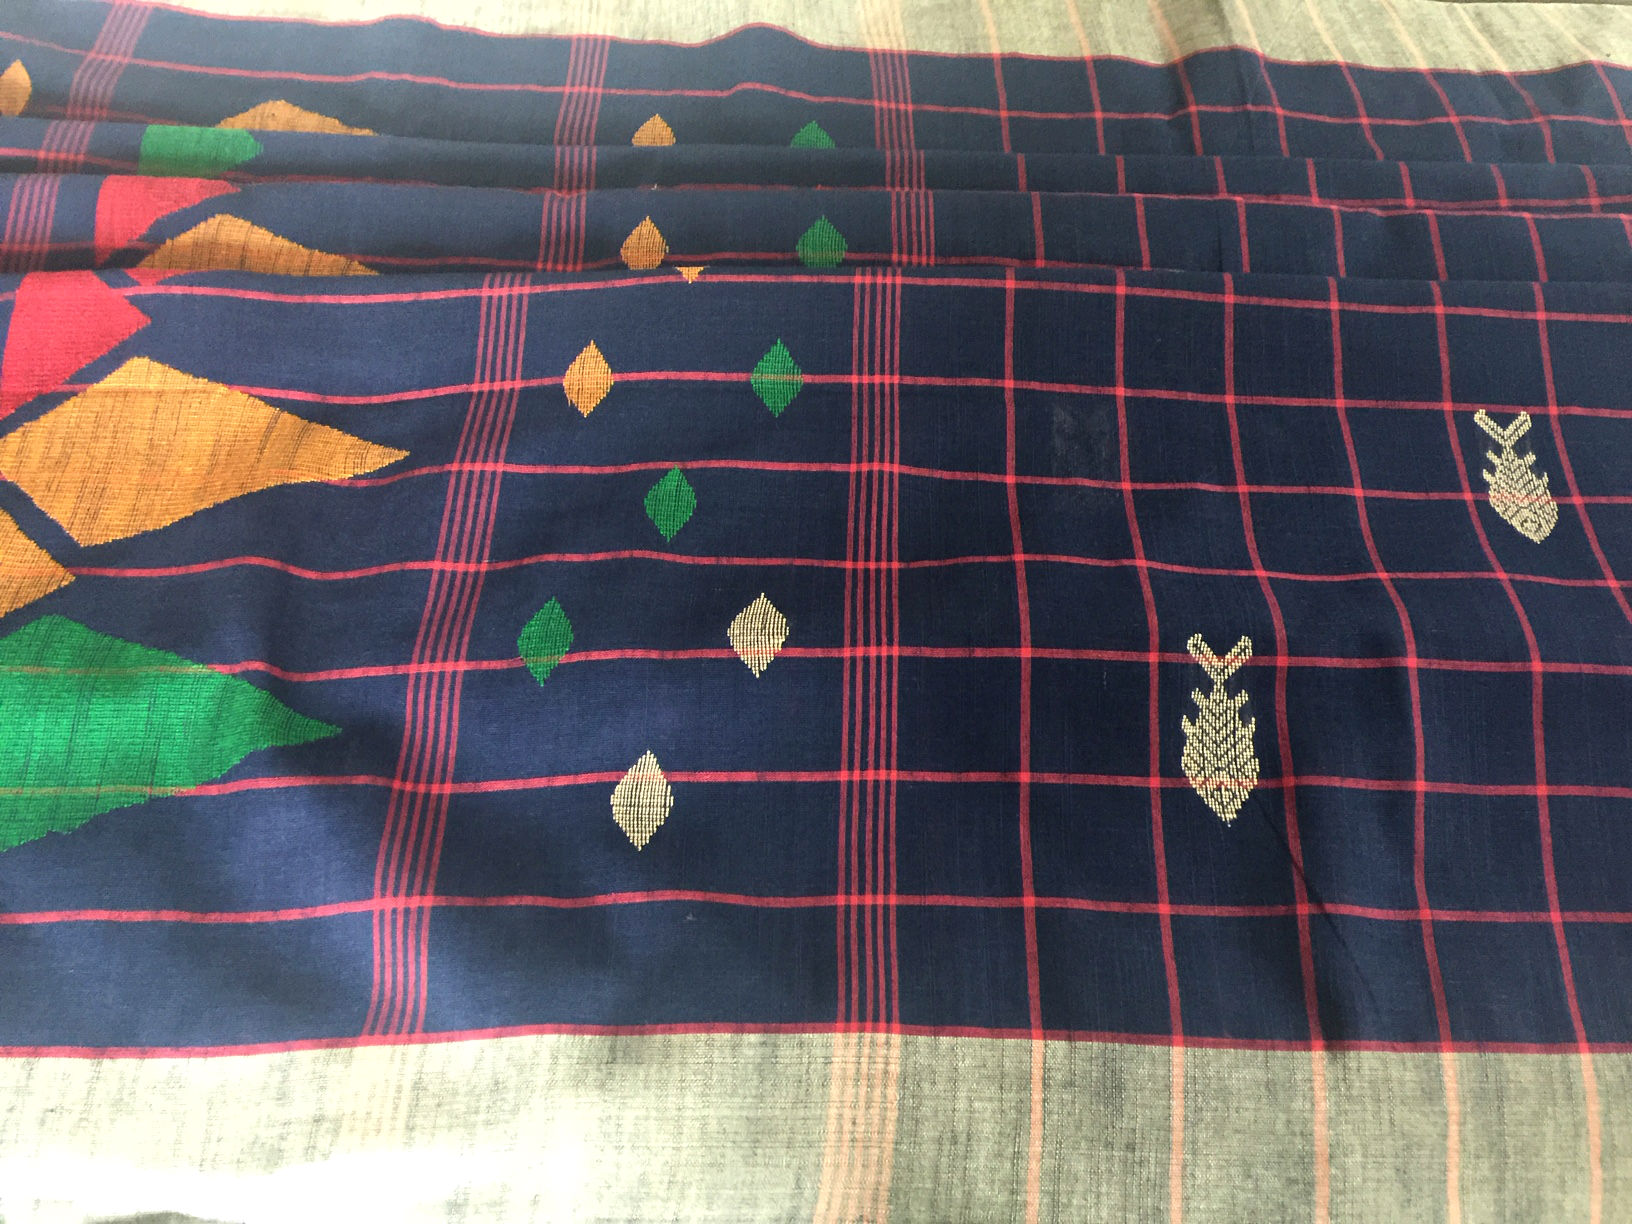 Bengal Tangail Cotton Navy with Checks and Fish